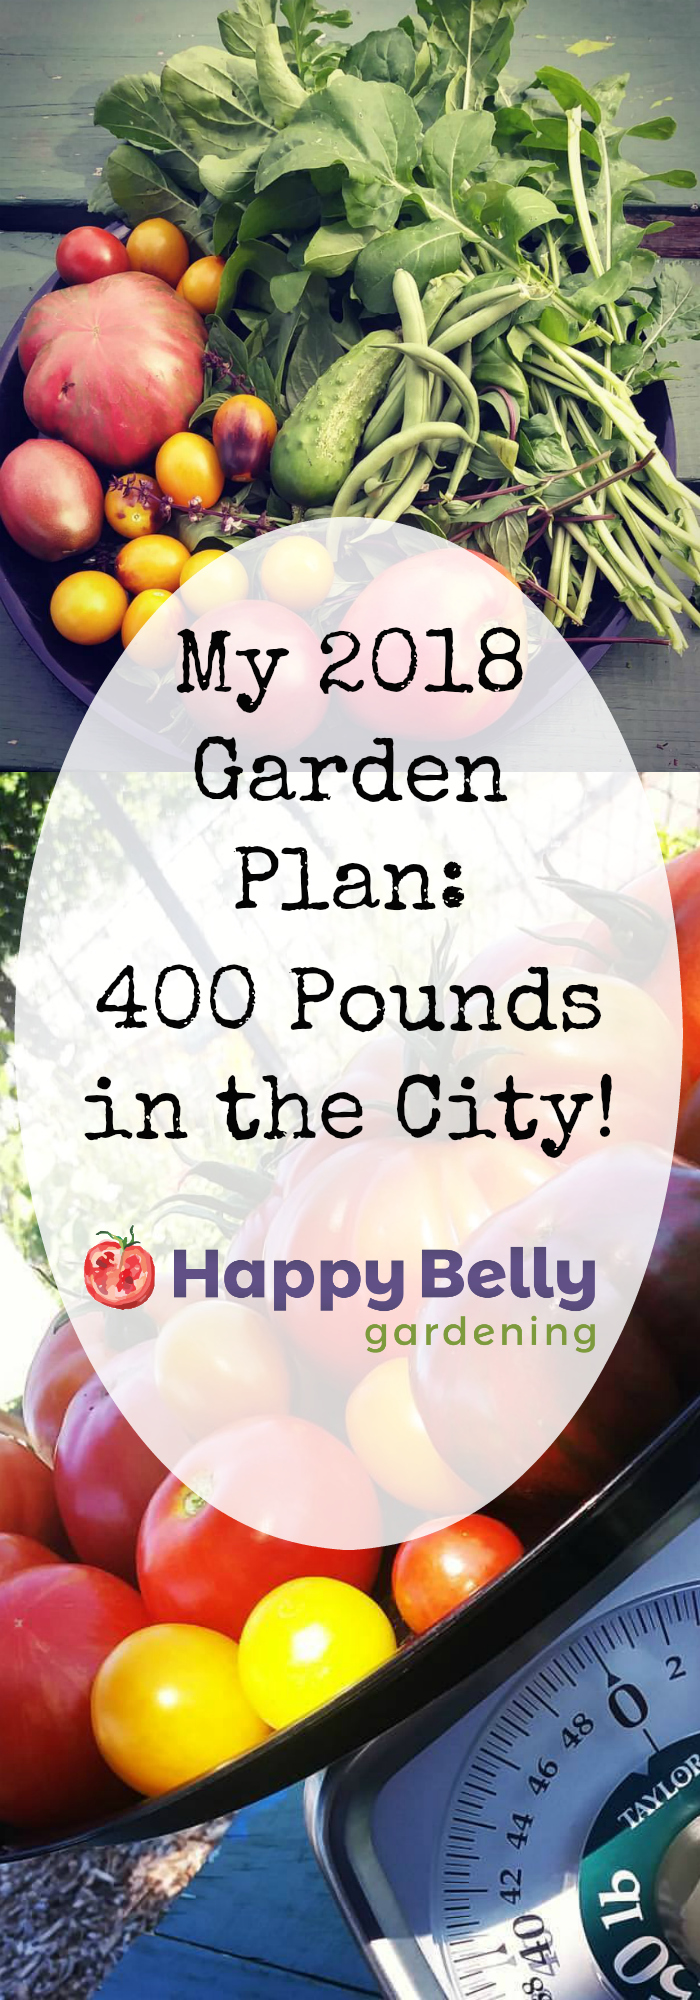 My 2018 Garden Plan - 400 pounds in the city - for pinterest.jpg